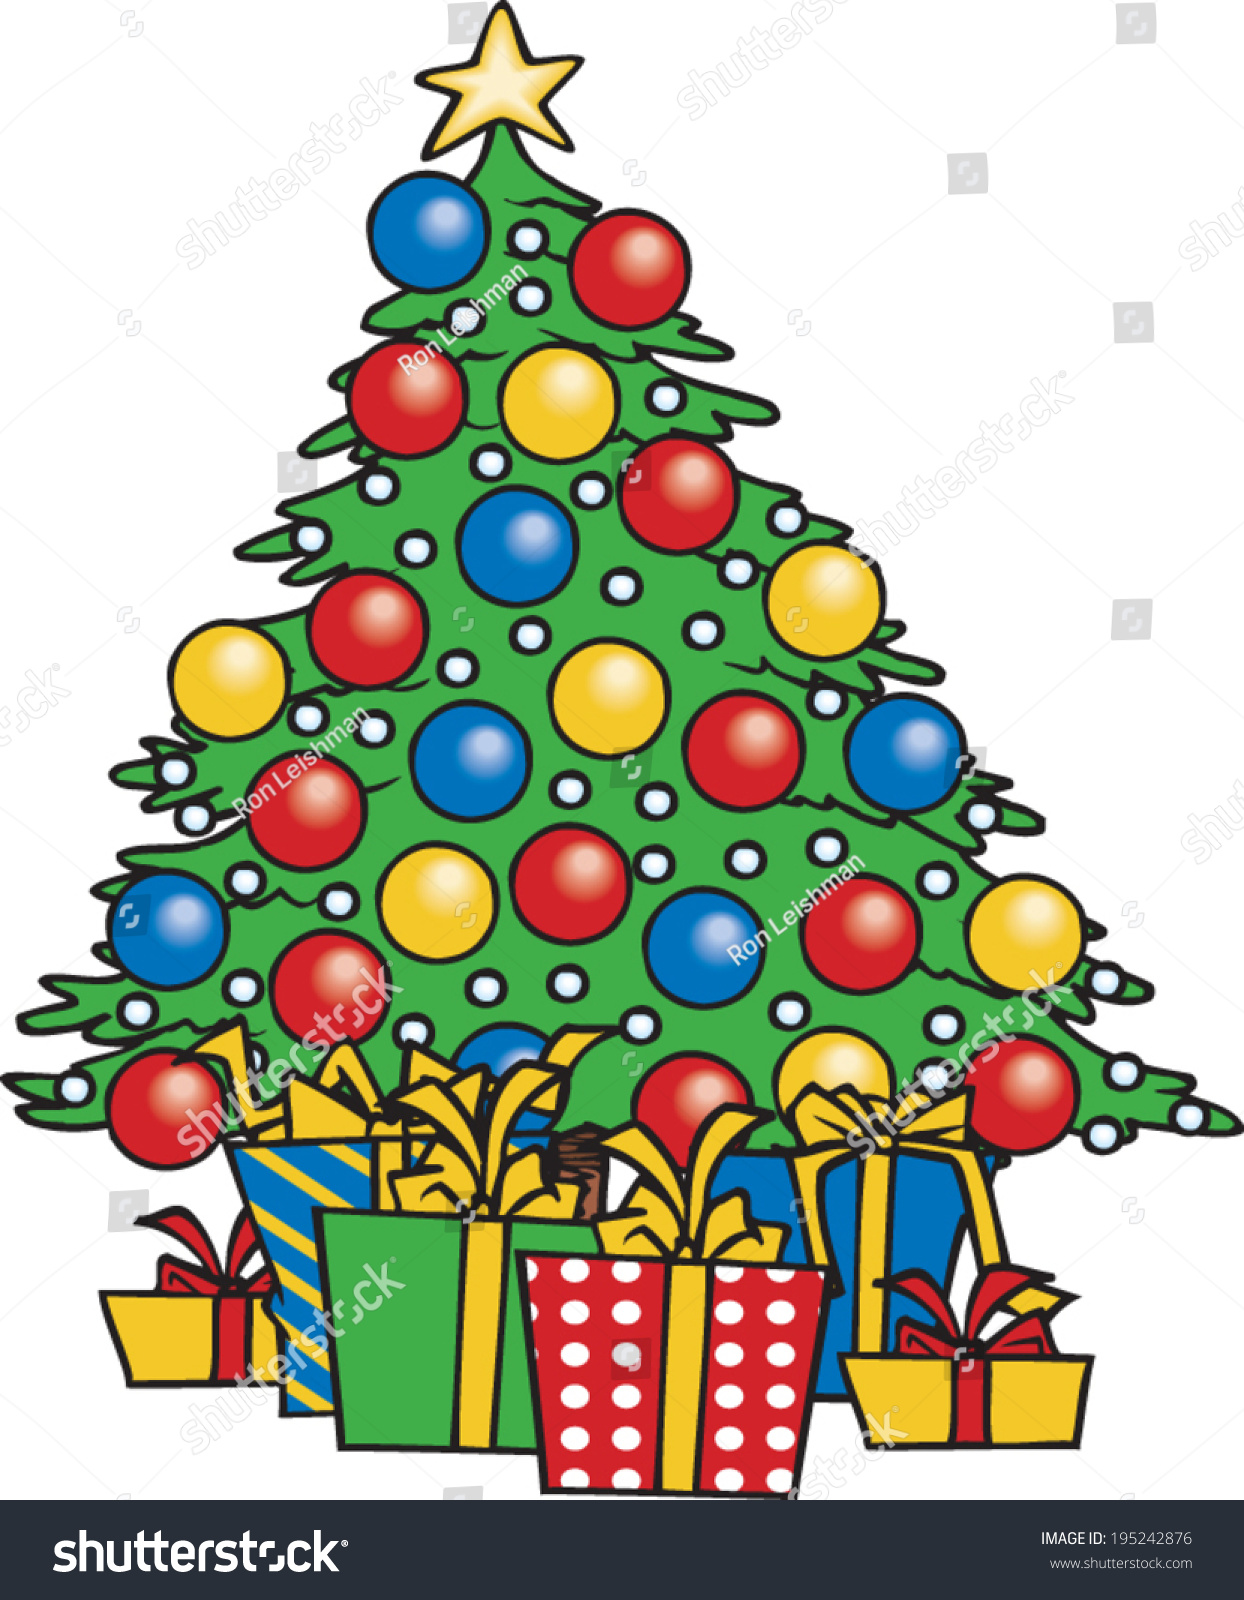 Cartoon Christmas Tree Gifts Underneath Stock Vector 195242876 ...